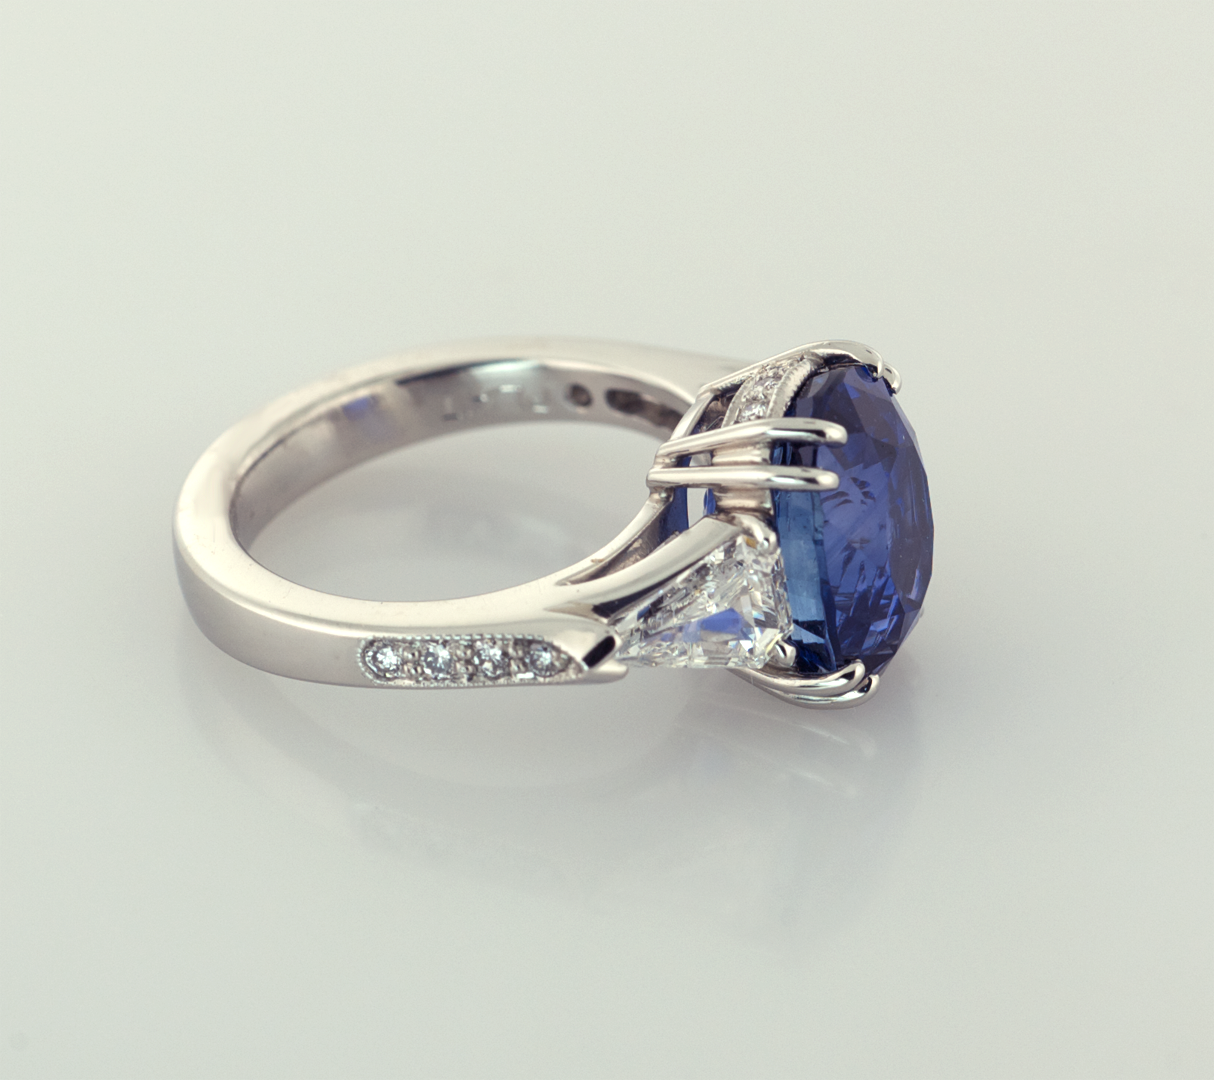 Oval Sapphire 3.50ct. and Trilliam Shape Diamonds Platinum Ring, Side View